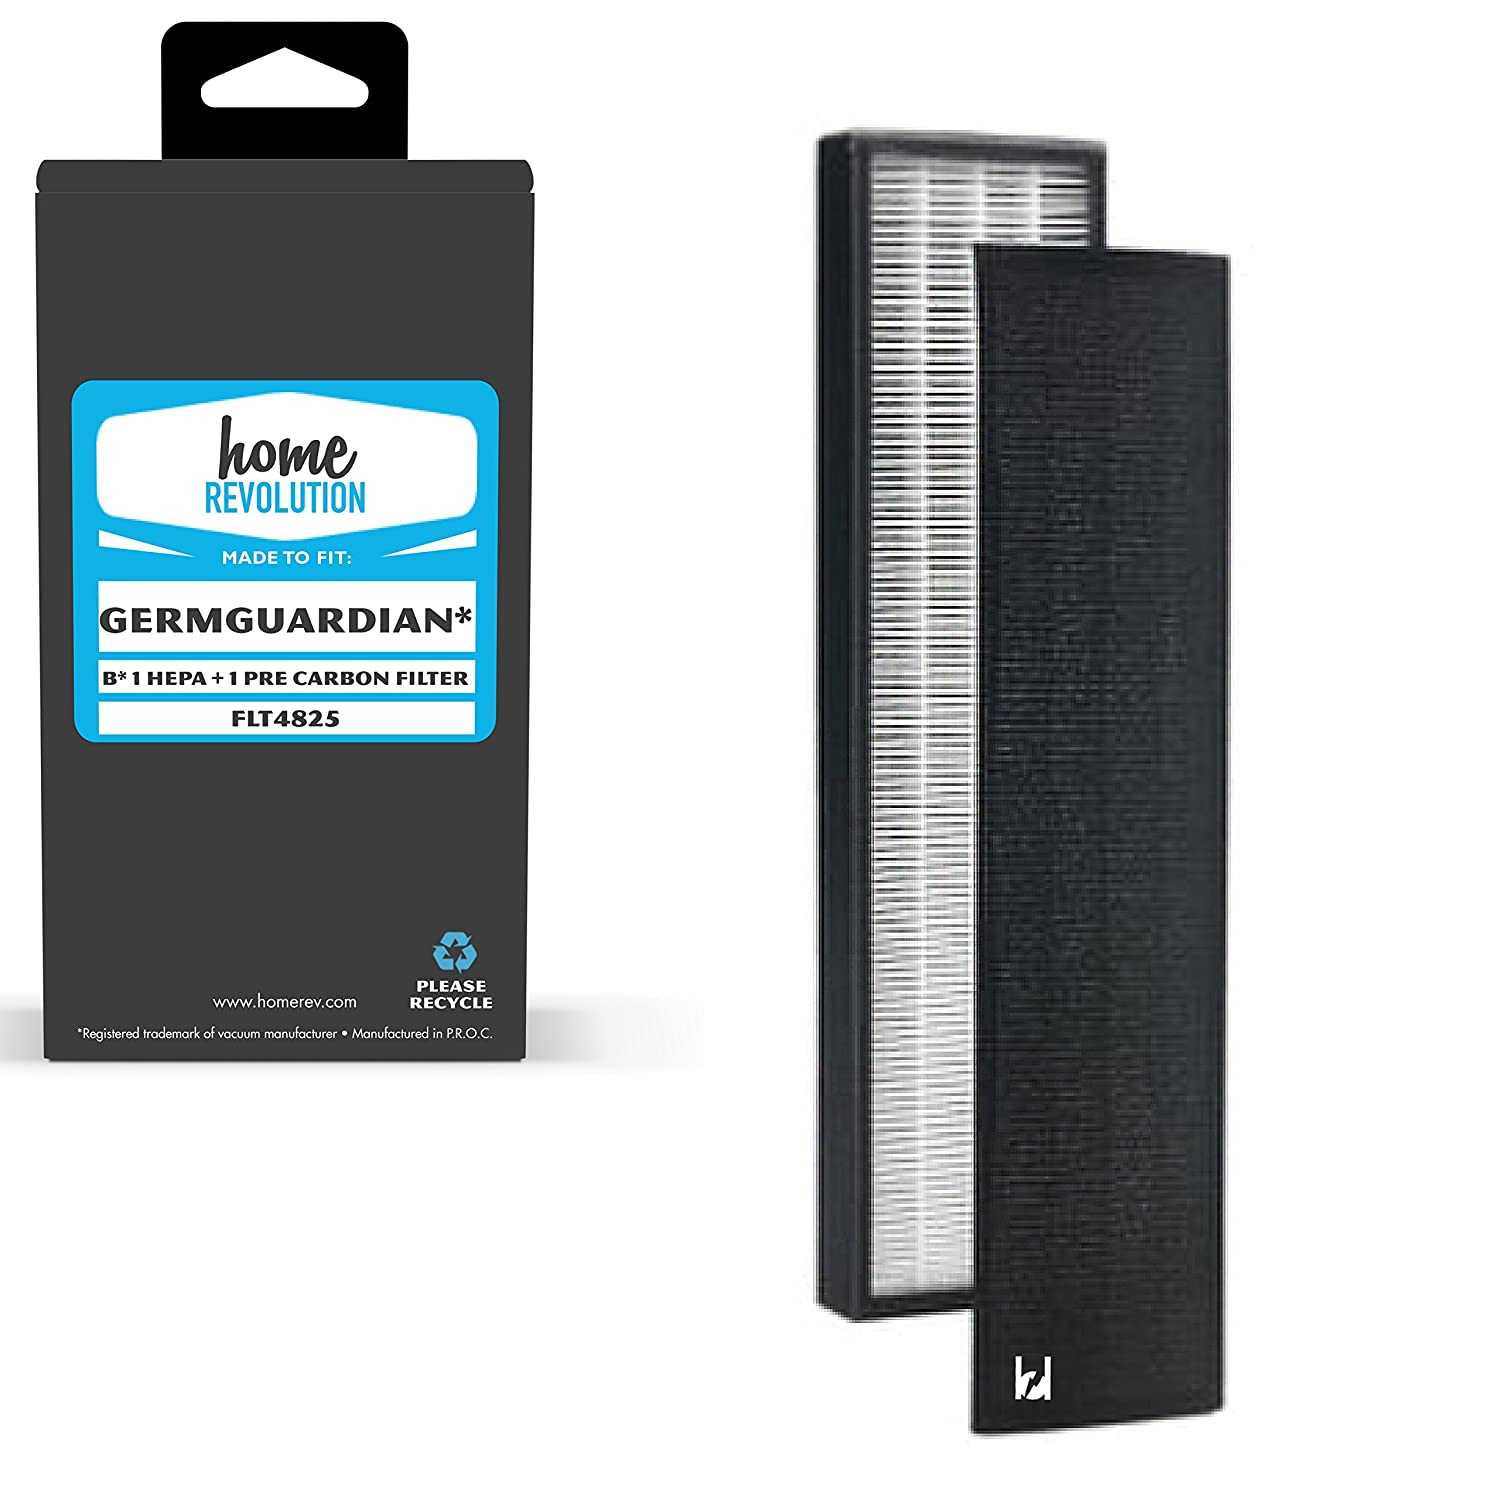 AC4800 Home Revolution Replacement HEPA and Carbon Filter Compare to Part #FLT4825 4900 Models Fits GermGuardian B Series AC4300